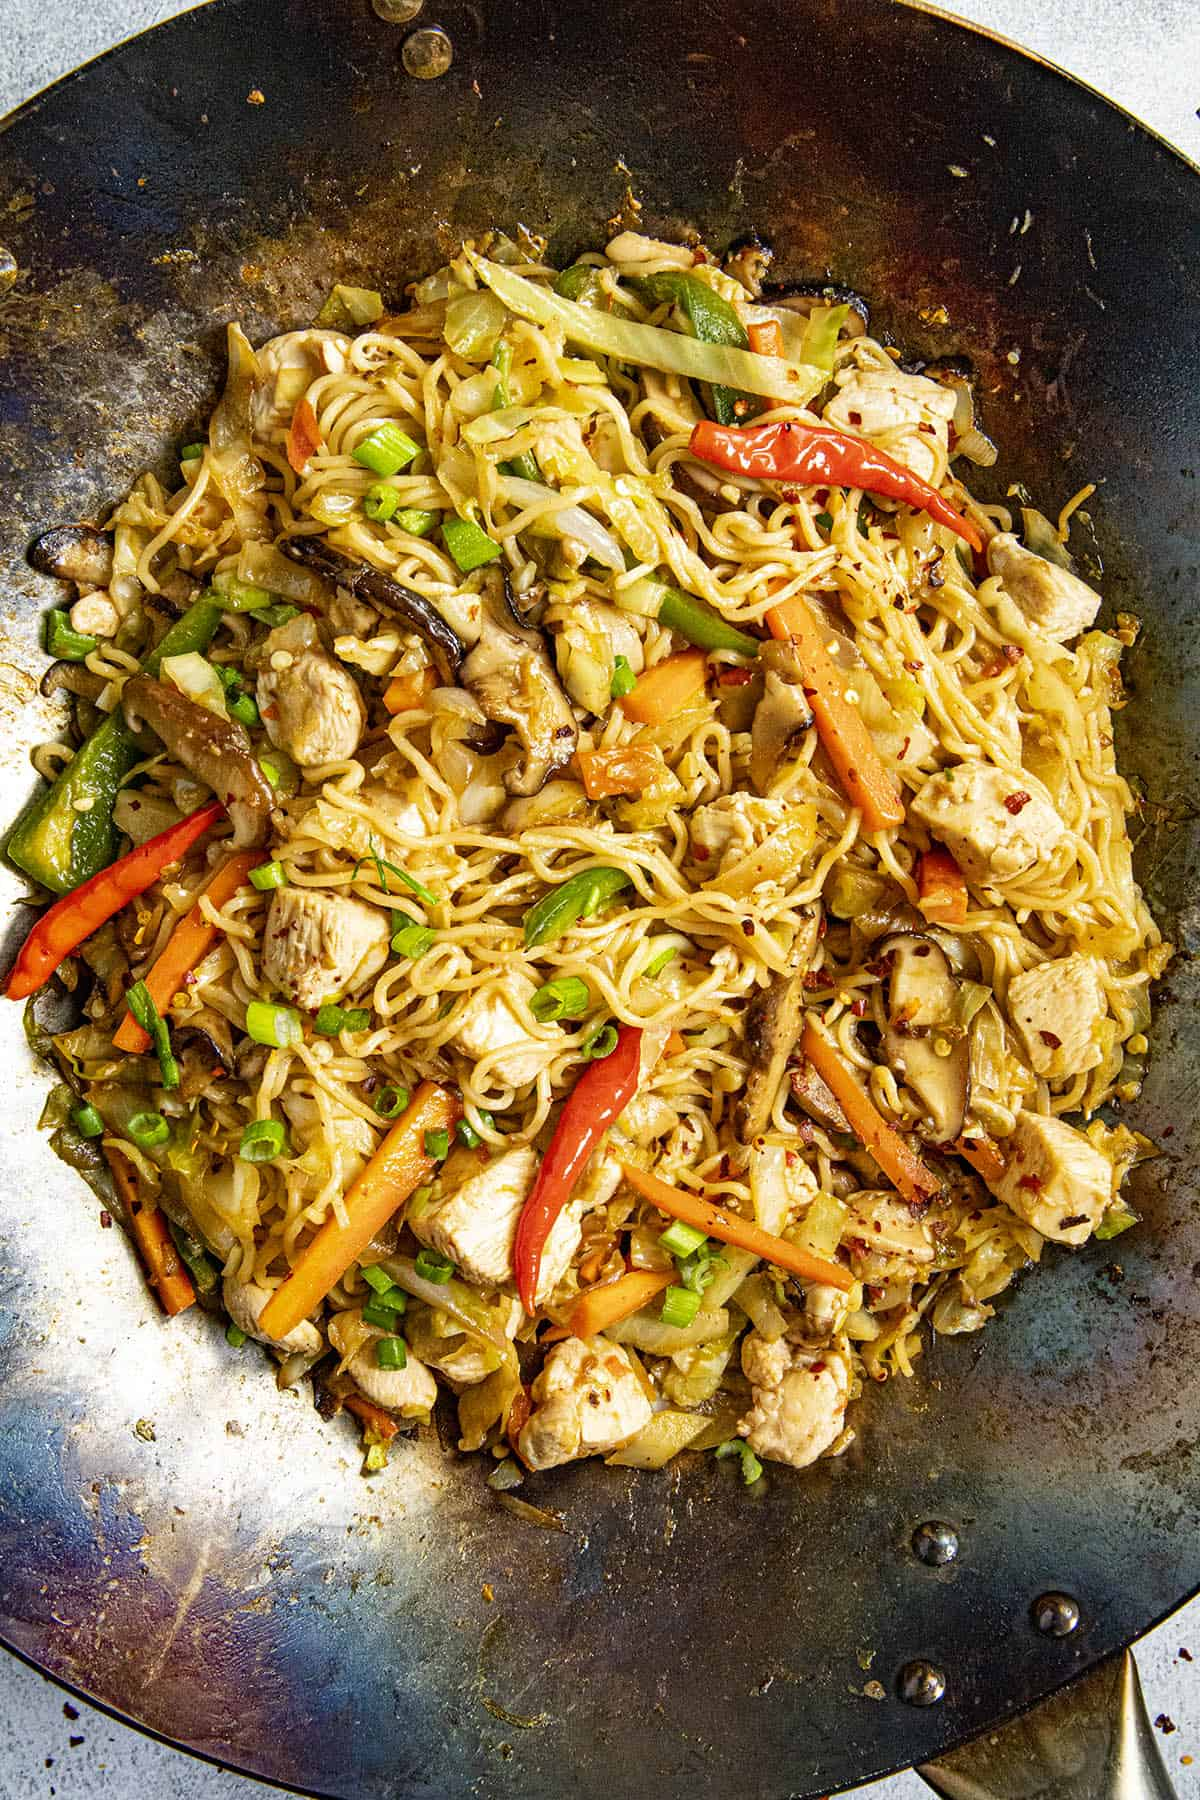 Yakisoba Noodles in a hot wok, ready to serve